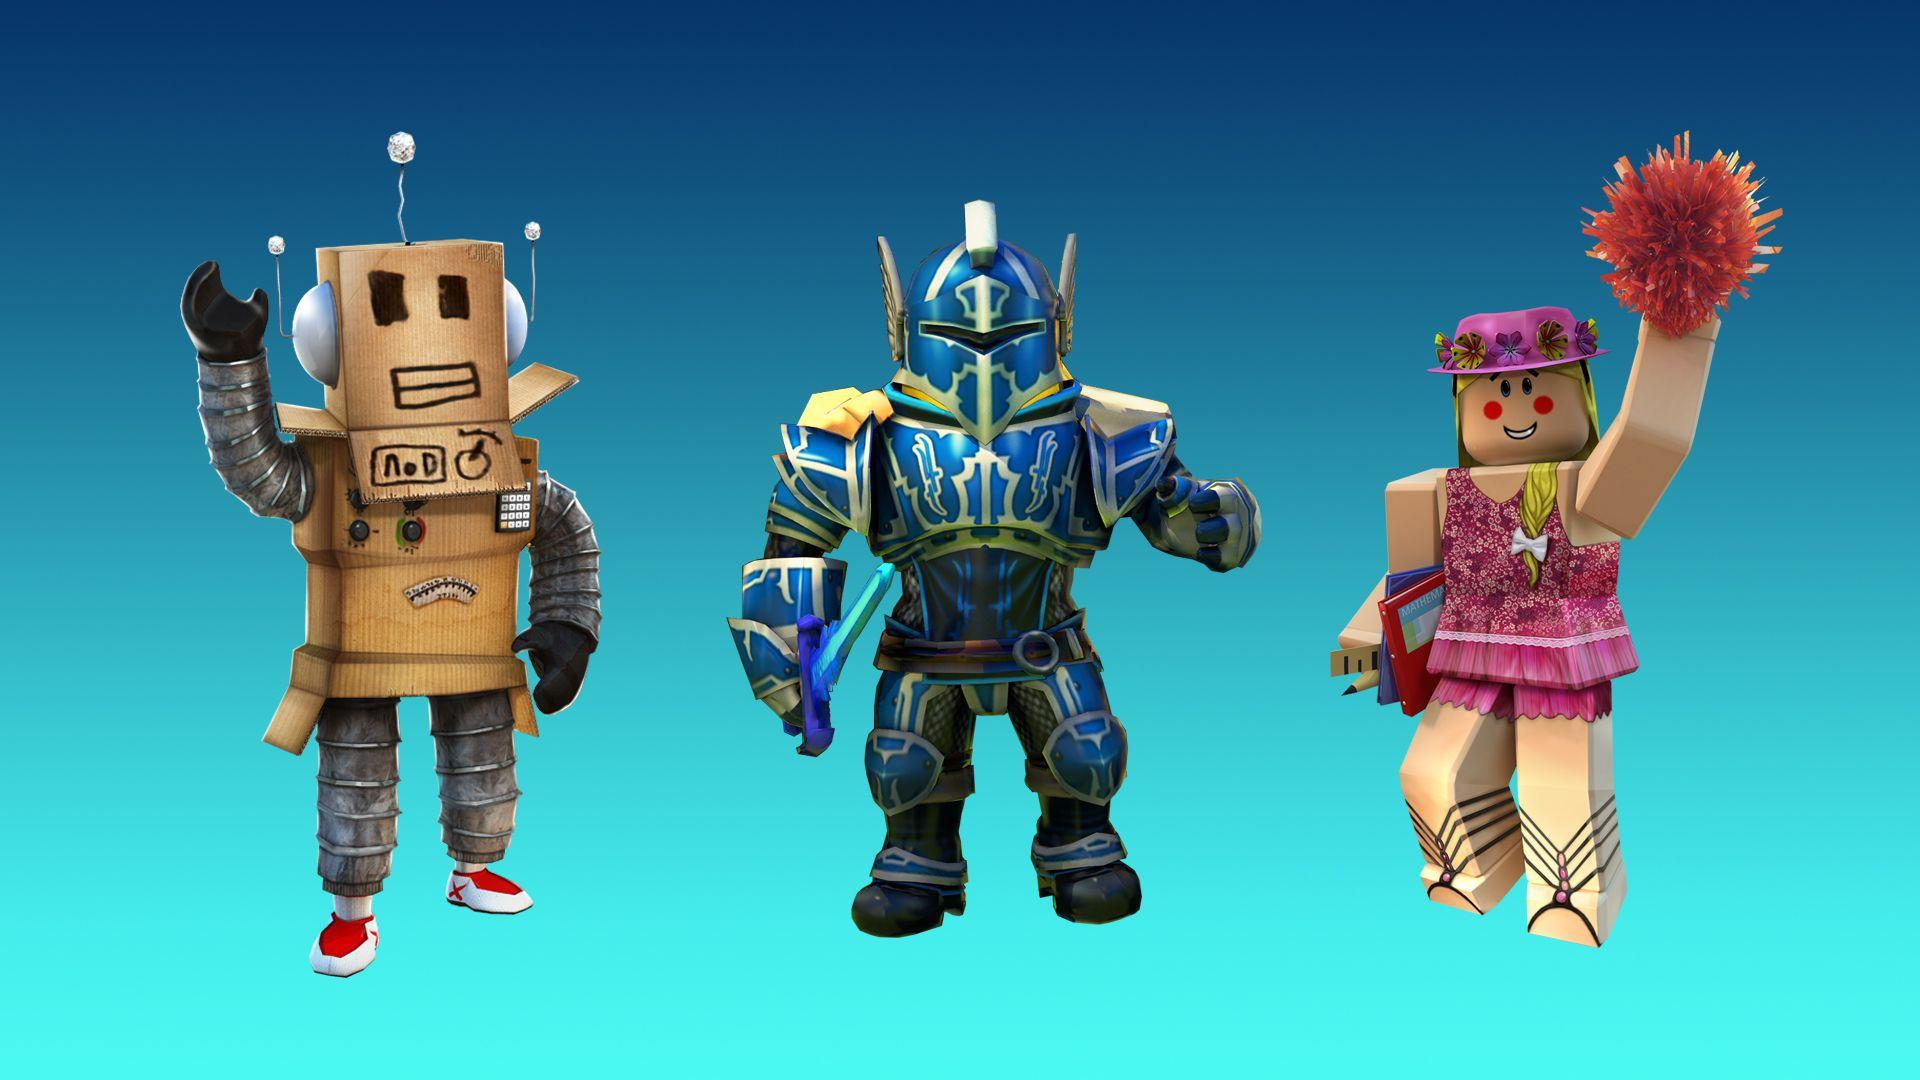 Roblox Robot Wallpapers Wallpaper Cave